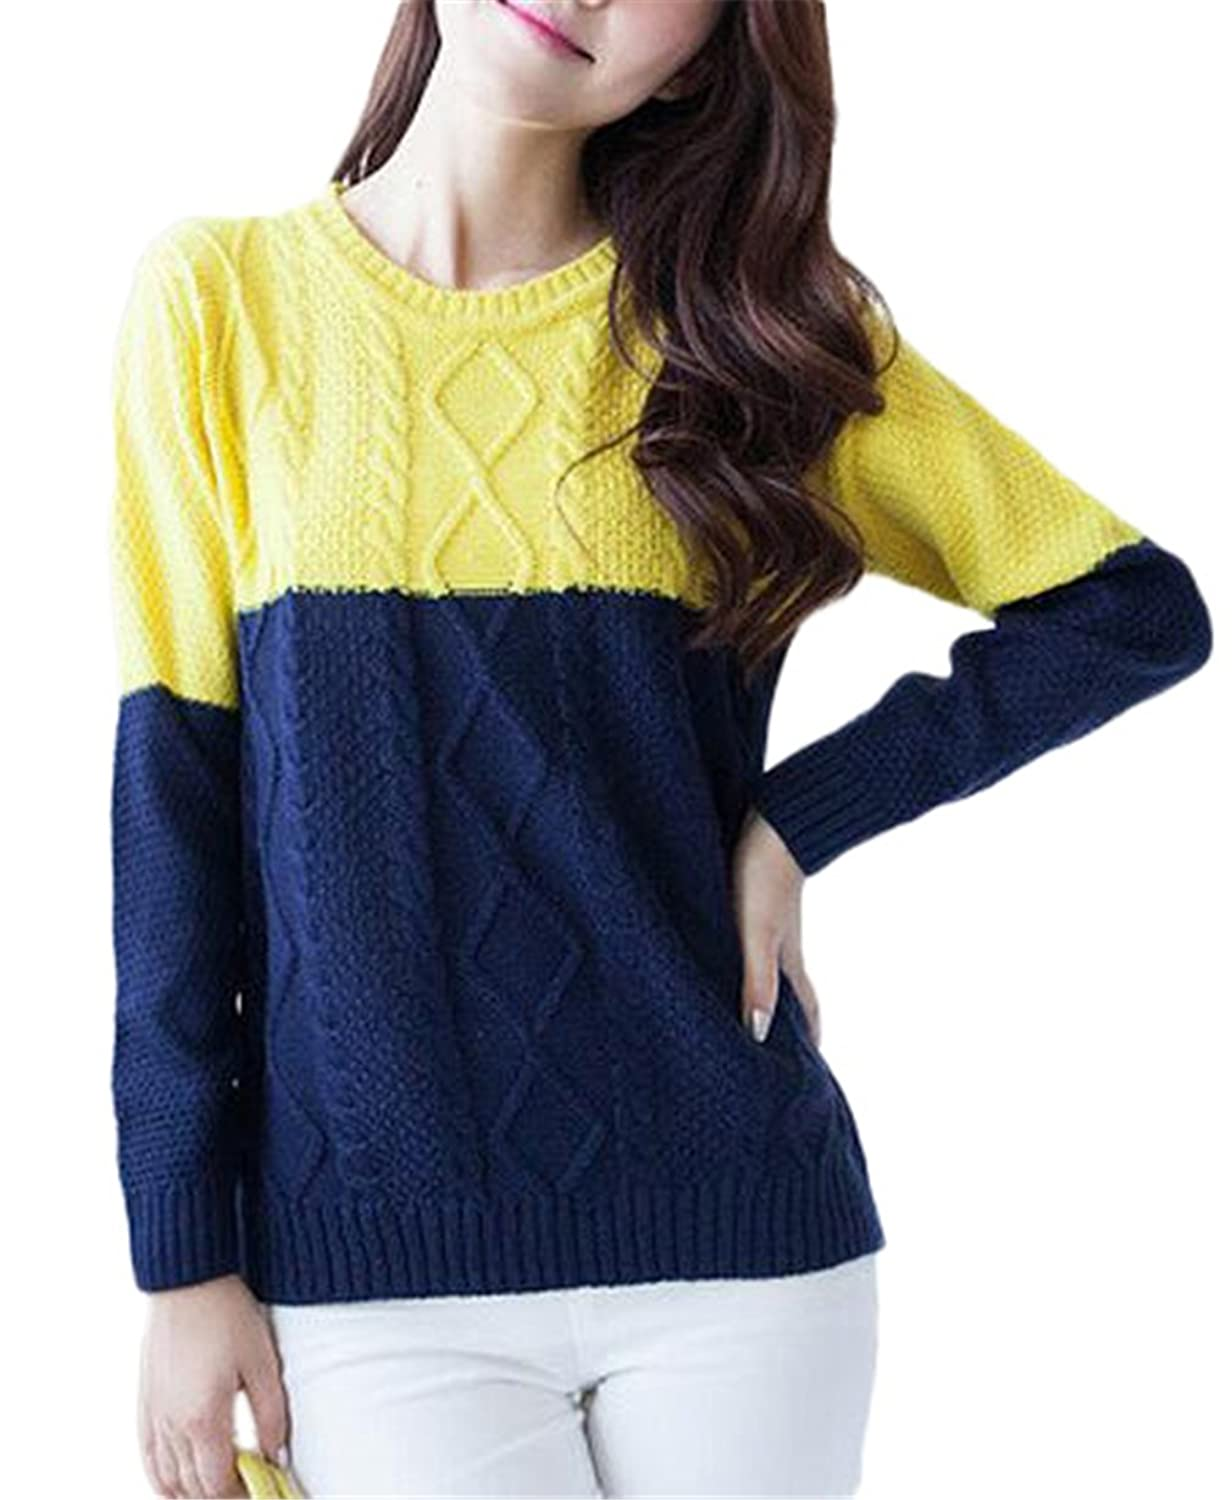 Women's Slim Round Neck Knitted Jacquard Long Sleeve Sweater Pullover